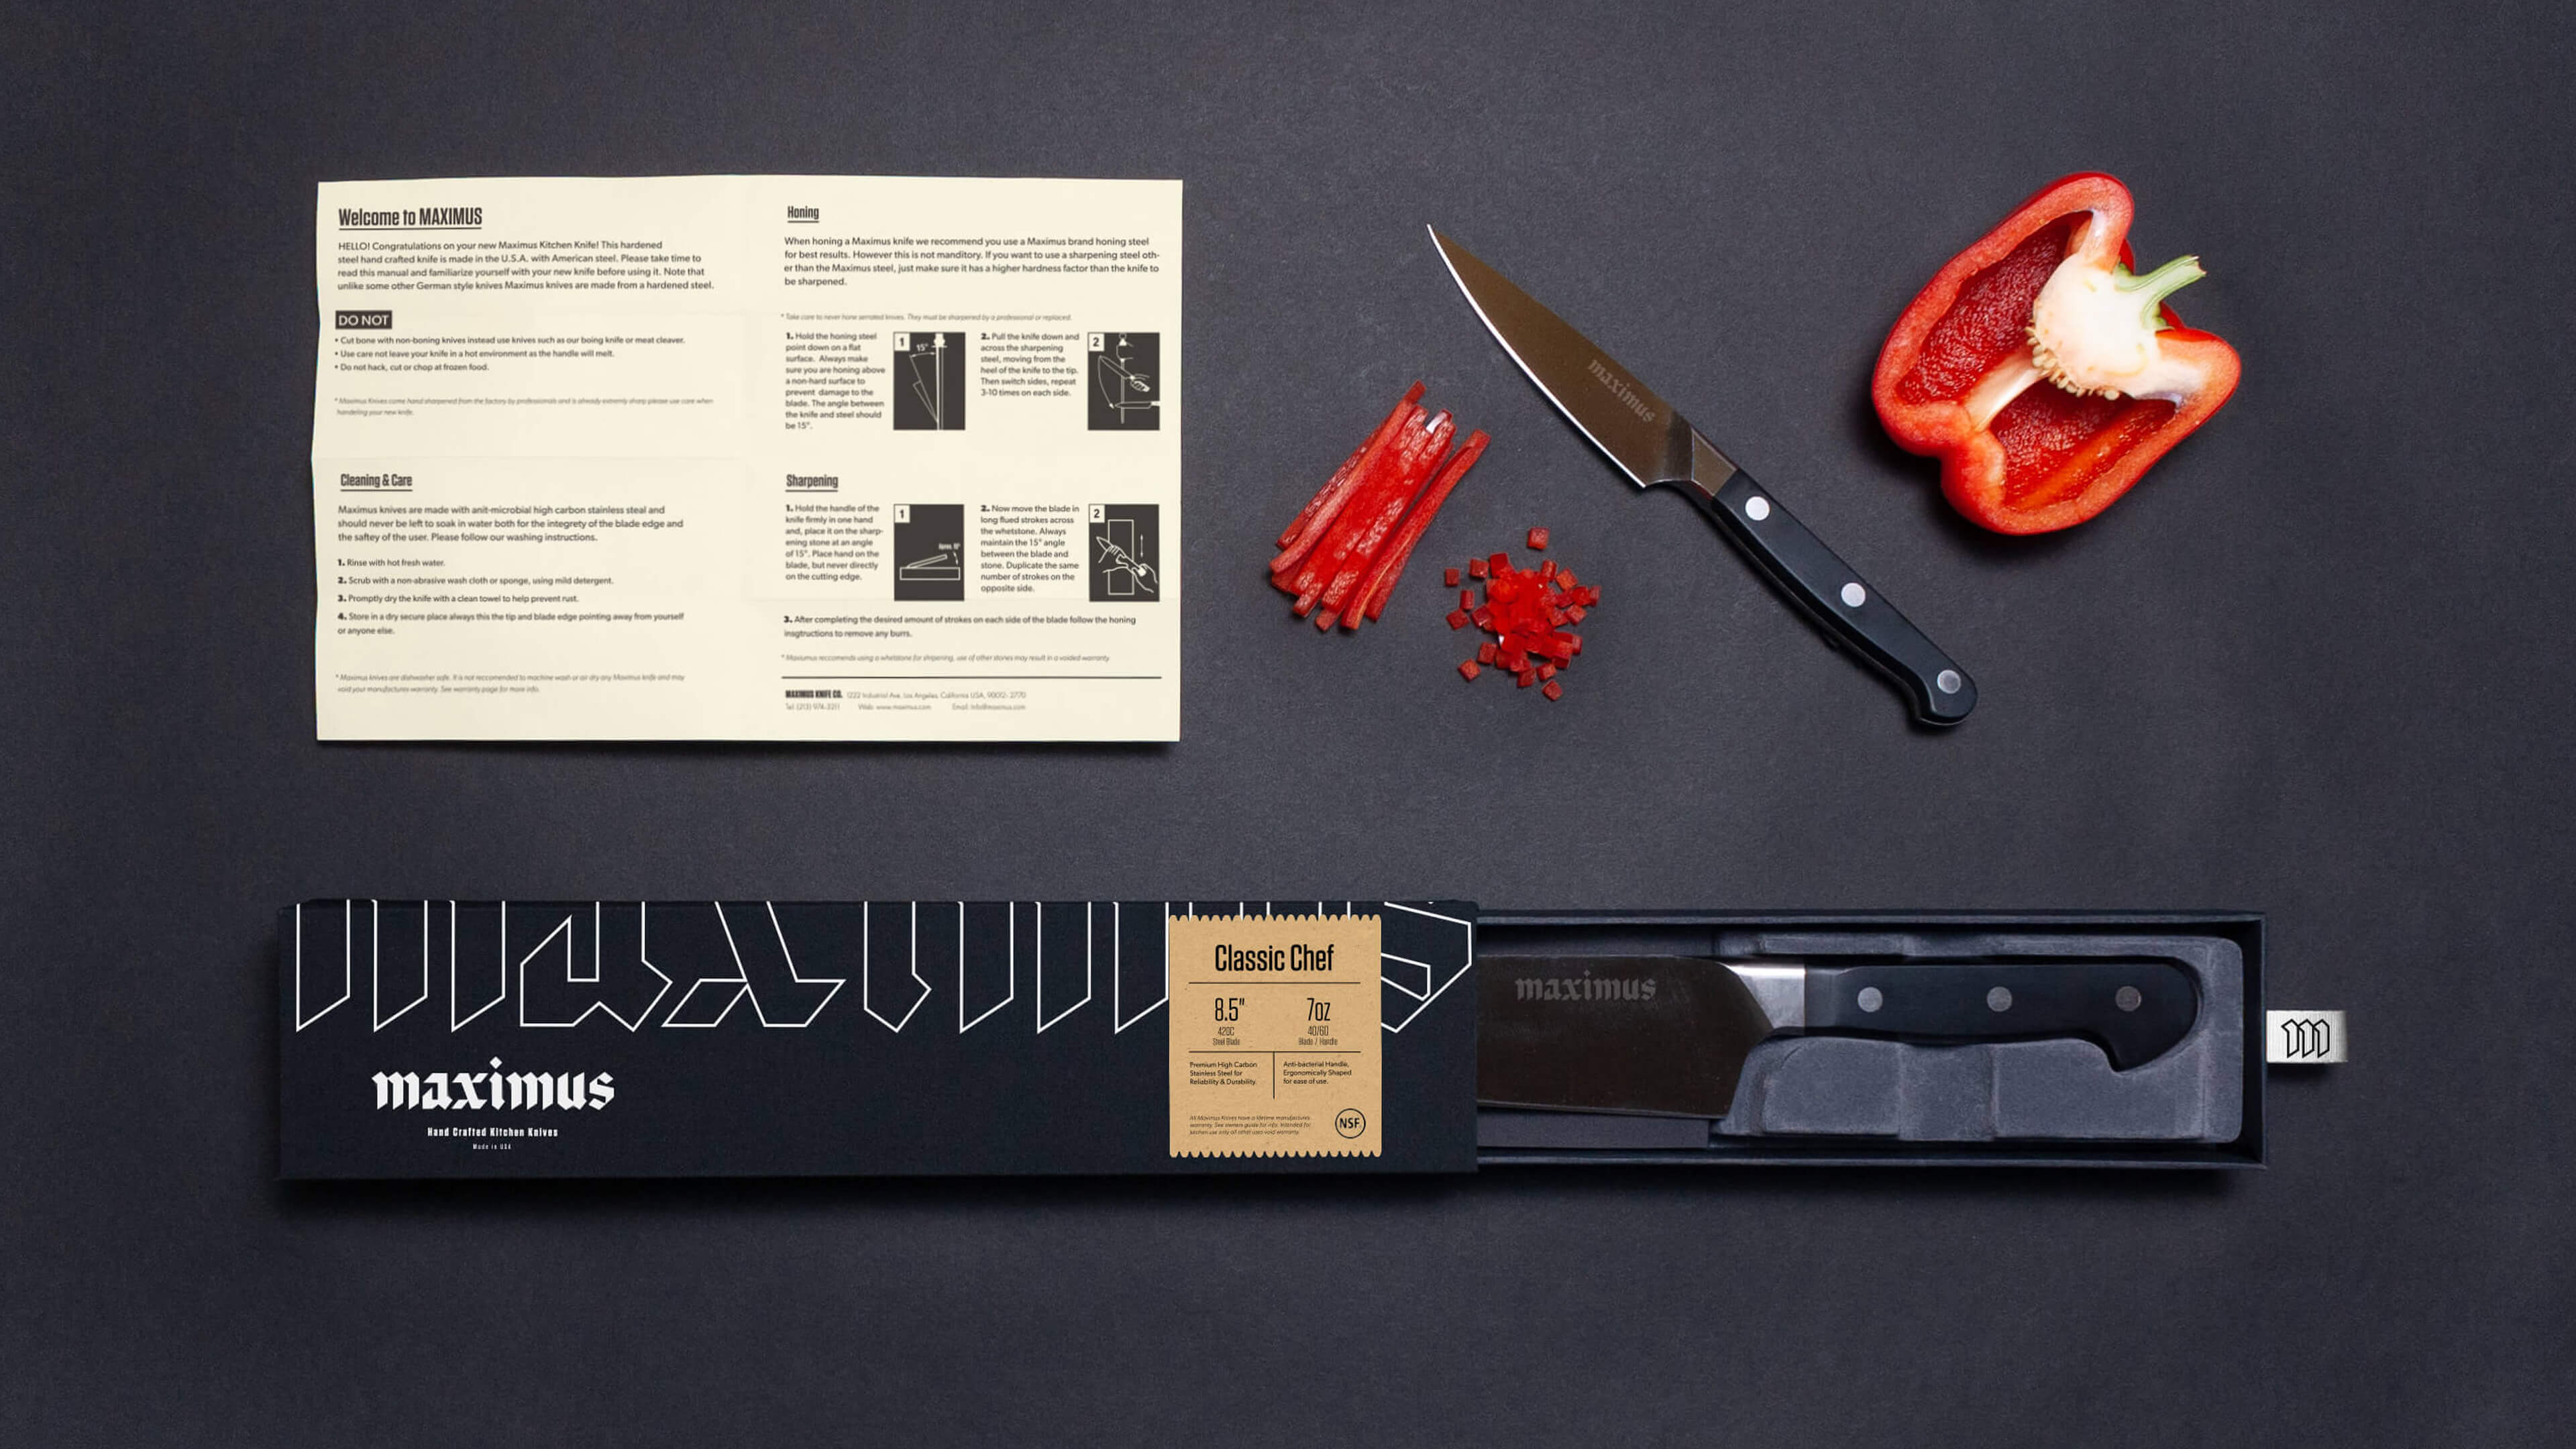 Maximus Knives Identity and Packaging Design by Student Antonio Mustico